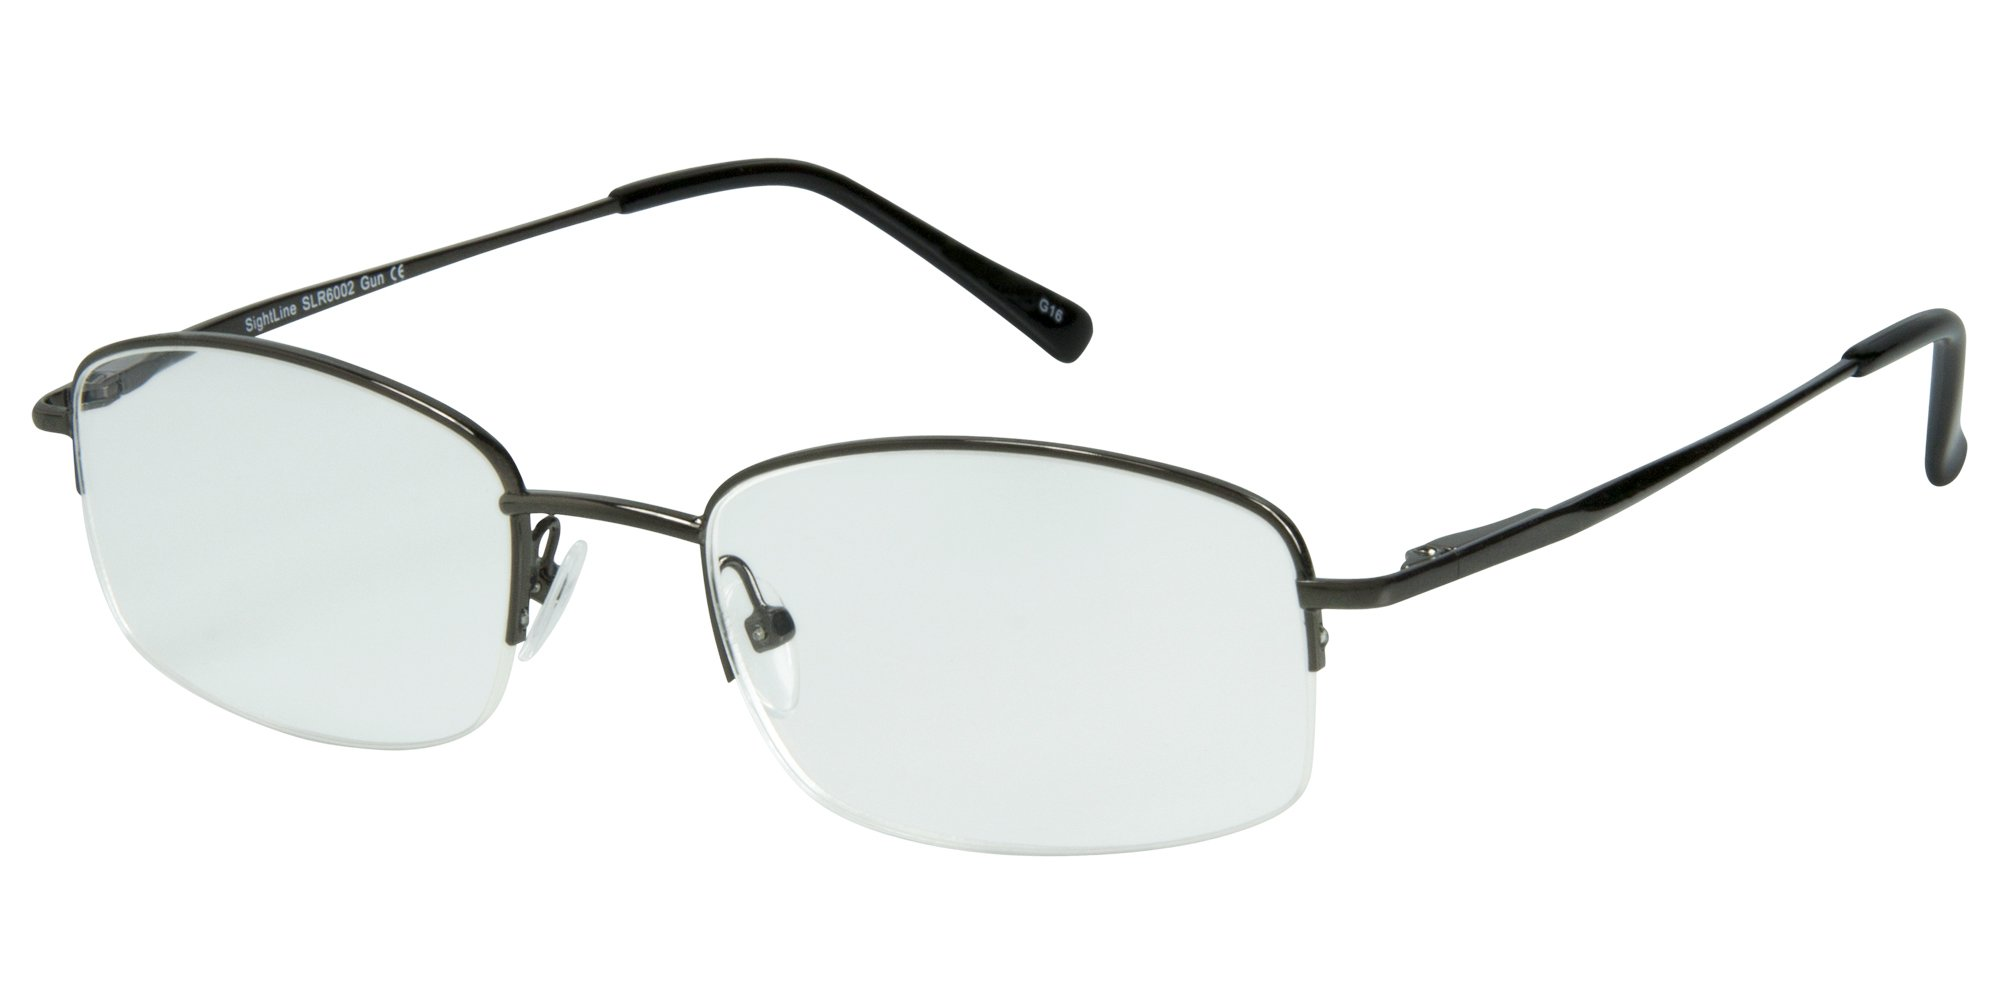 37819806de SightLine Multifocal Computer Reading Glasses 6002 Semi-Rimless Designer  Frames (3.00